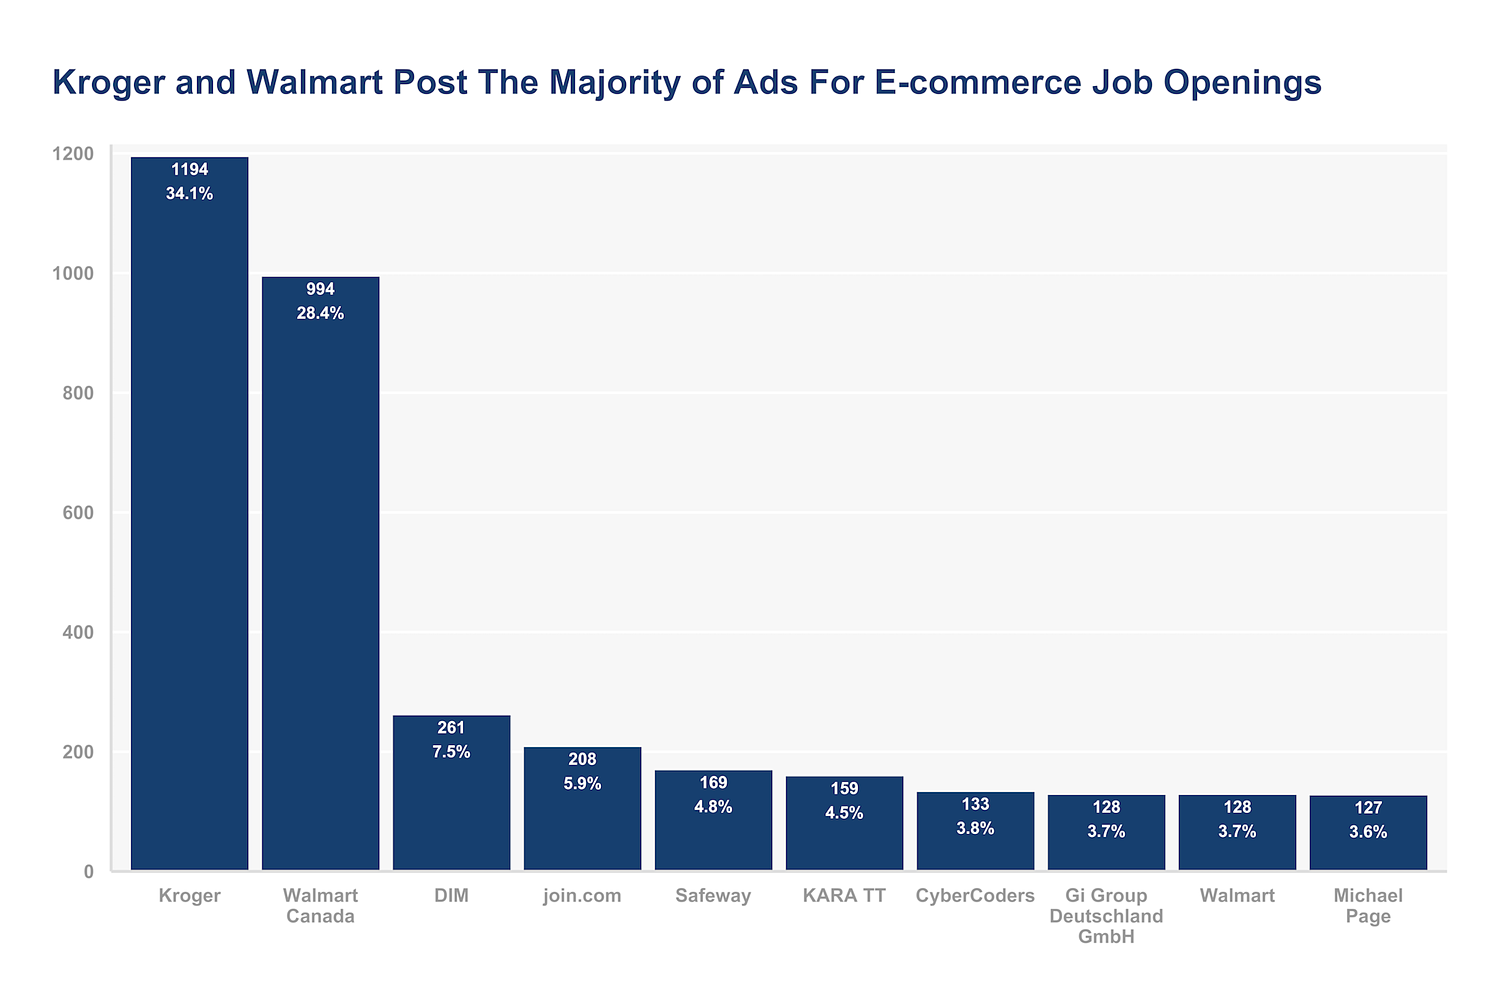 ads for e-commerce jobs in the US